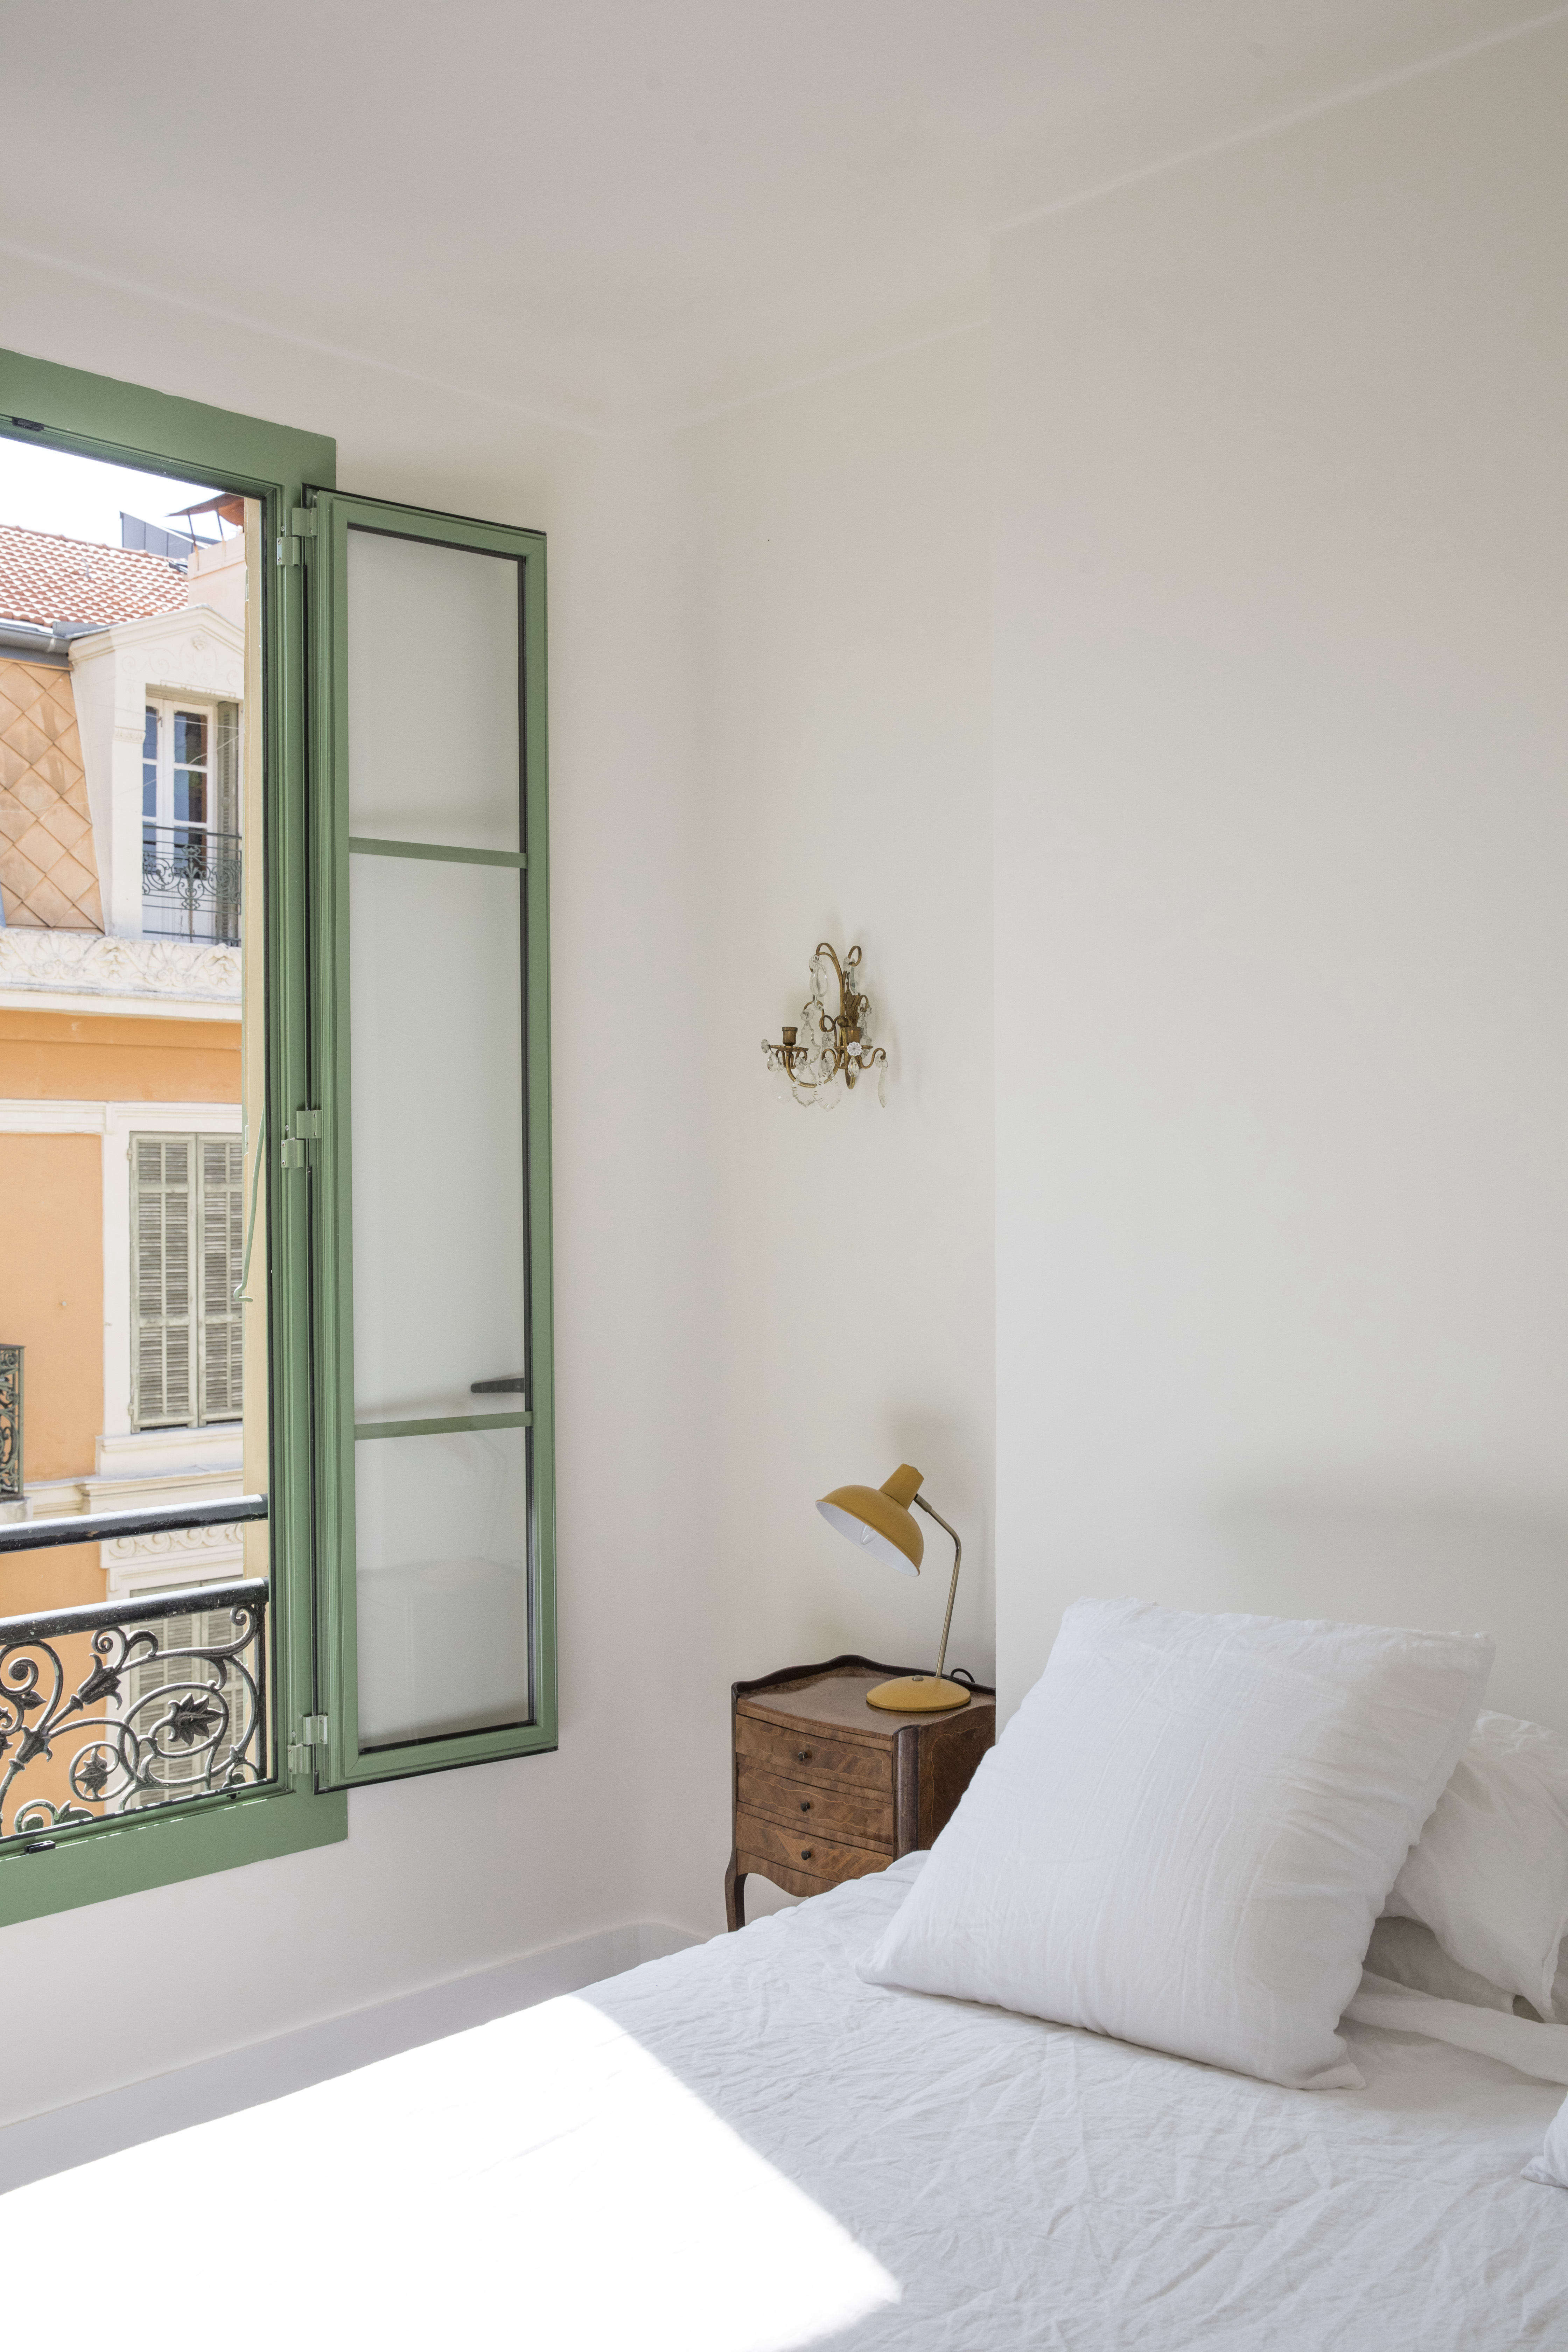 On our vacation list: this airy, charm-filled Airbnb in Nice.Photograph byHelen Cathcart, from The Six-Month Remodel: An Airy Flat in Nice Gets a New Lease on Life.